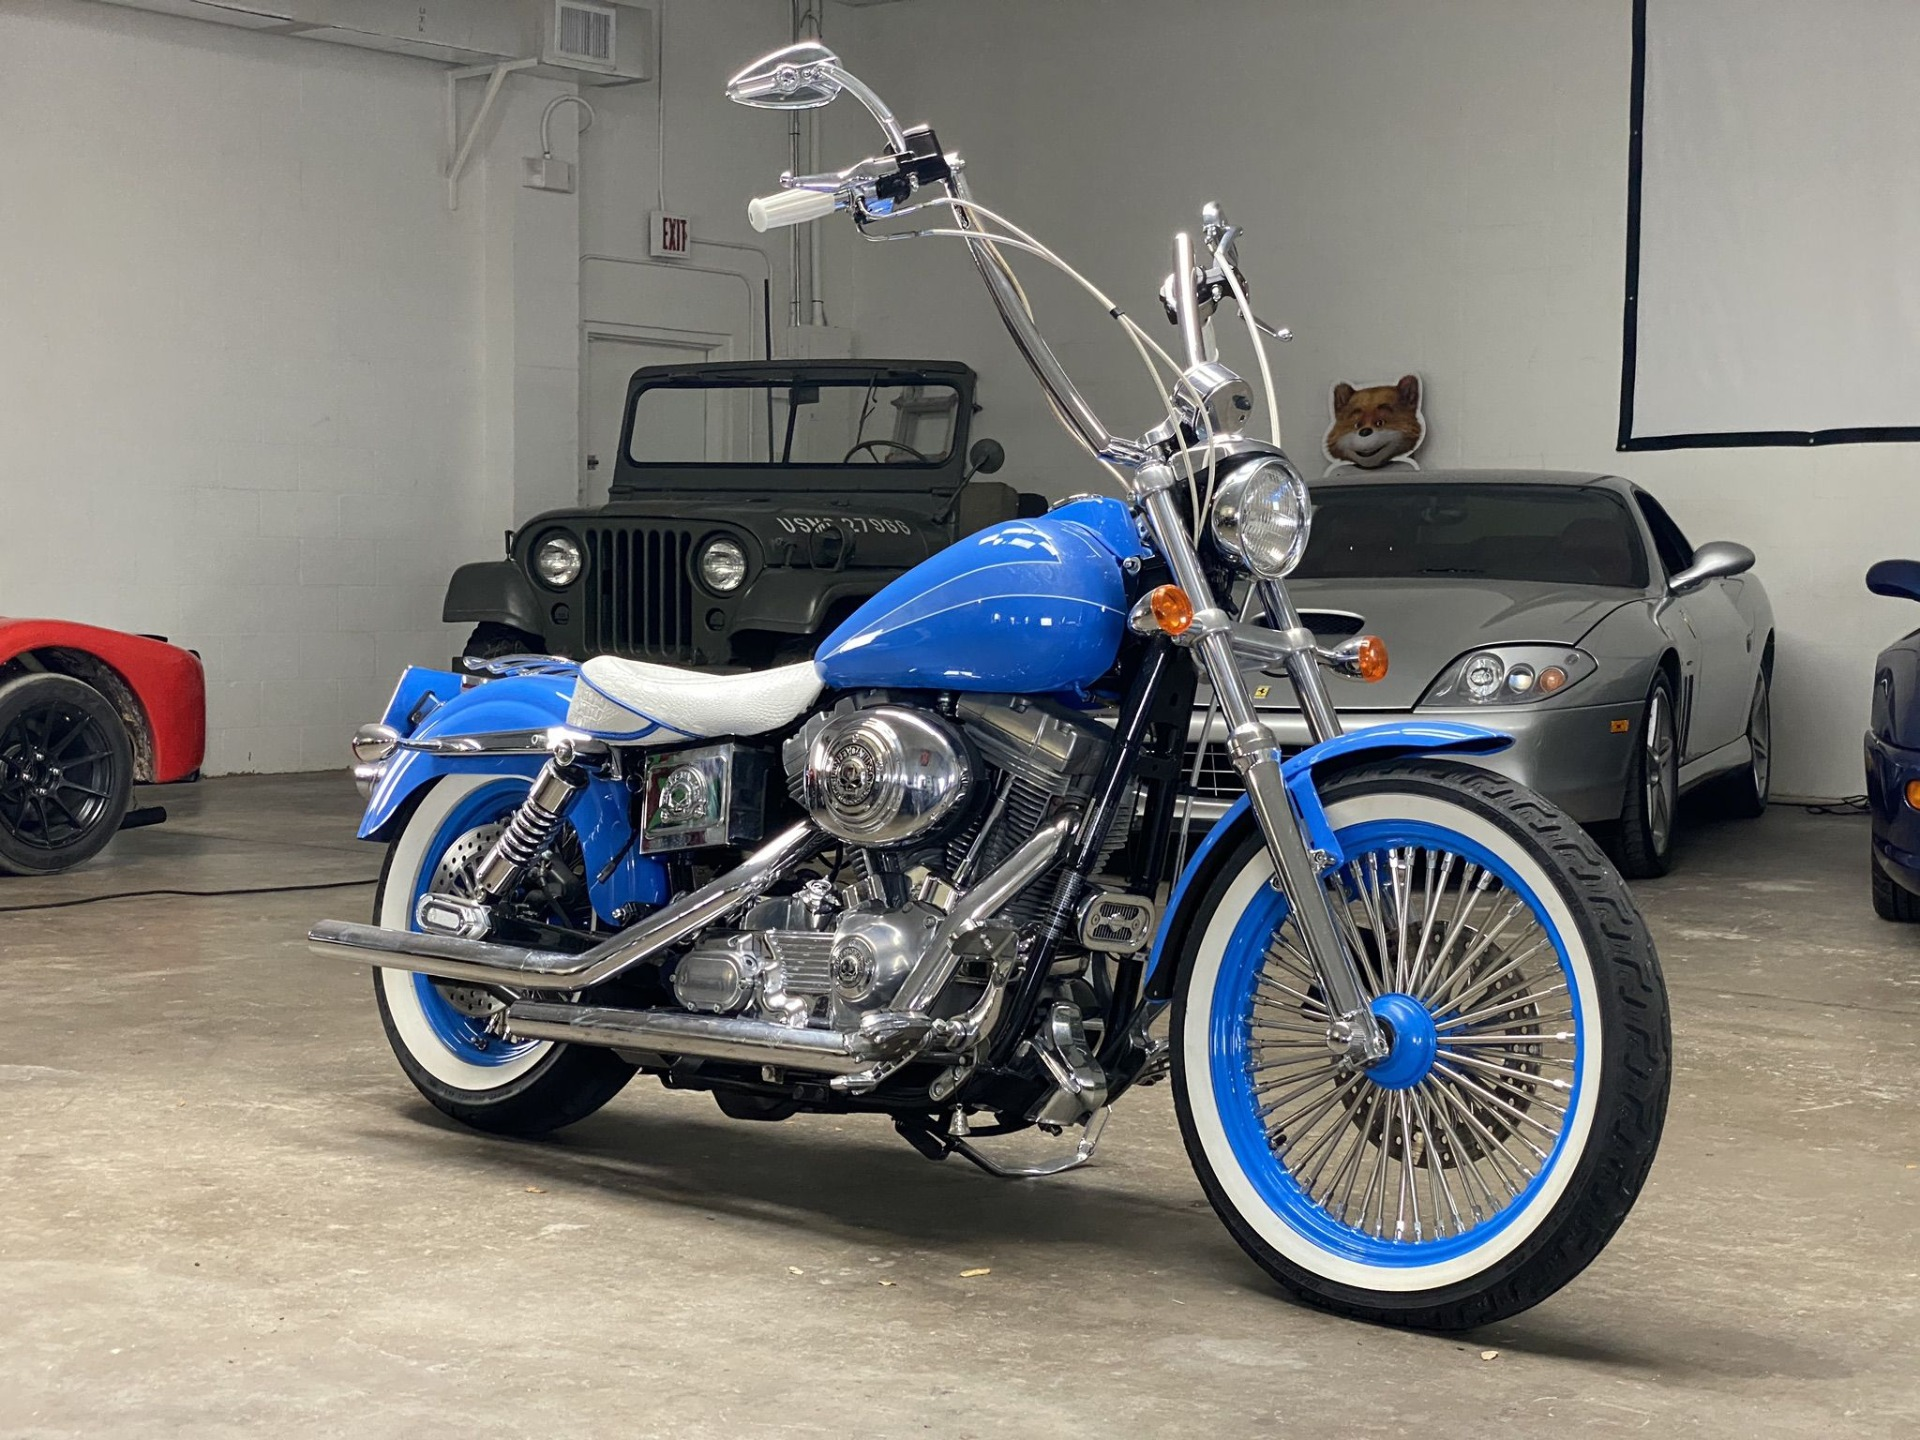 Used 2003 Harley-Davidson FXD Dyna Super Glide for sale $6,997 at Track and Field Motors in Safety Harbor FL